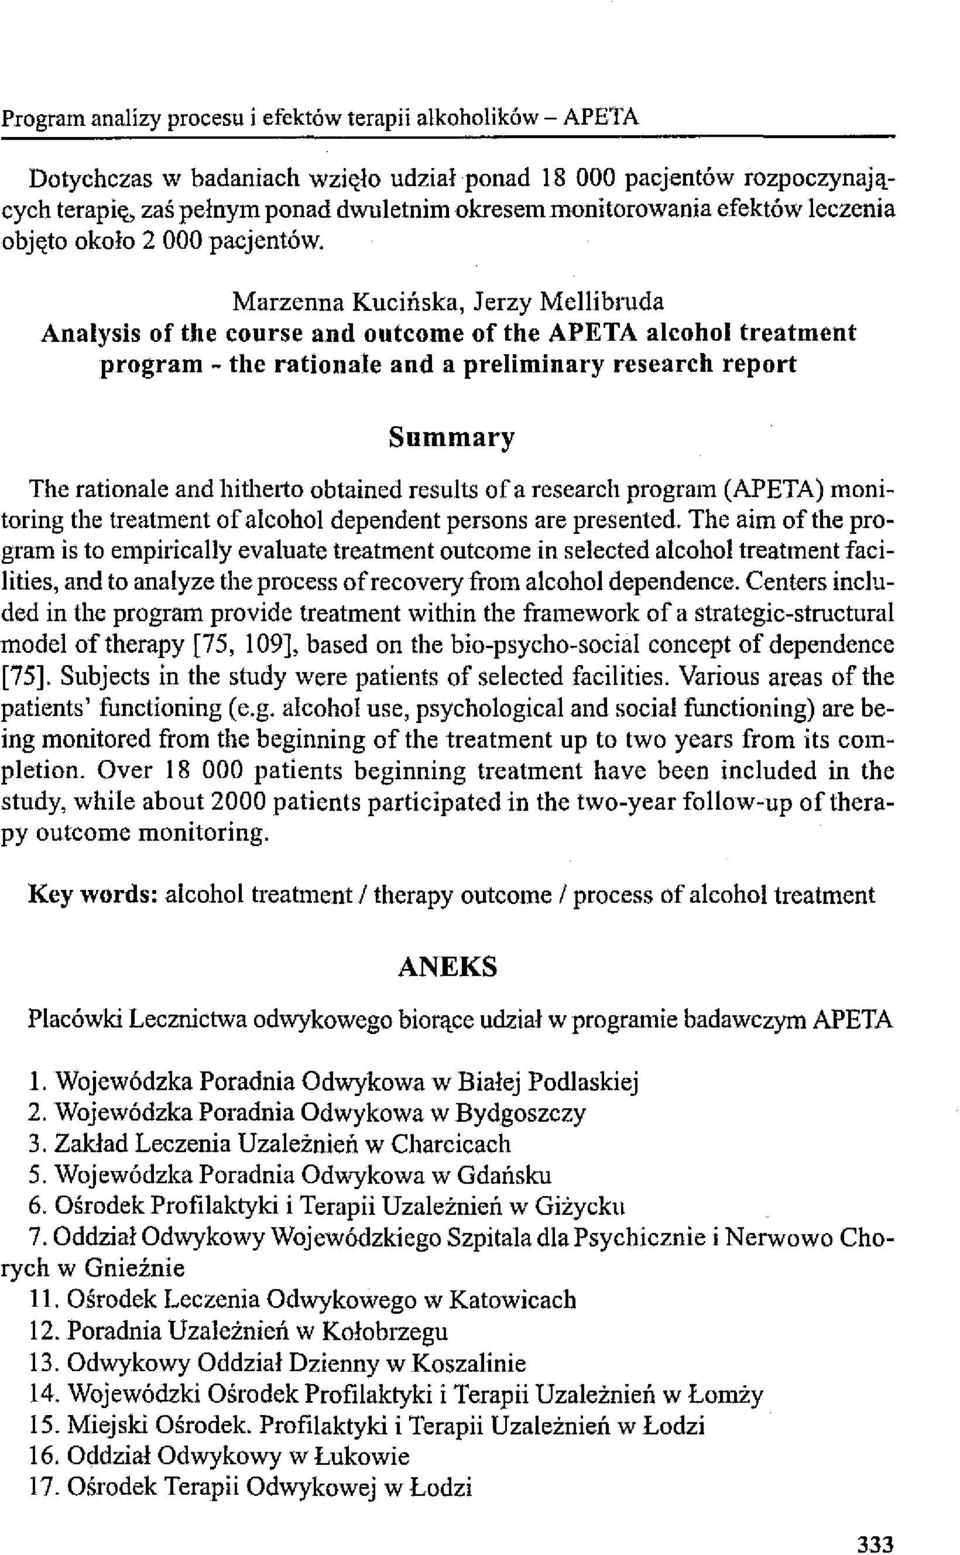 Marzenna Kucińska, Jerzy Mellibmda Anałysis of the course and outcome of the APETA a1cohoł treatmcnt program - the rationale and a preliminary research report Summary The rationale and hitherto